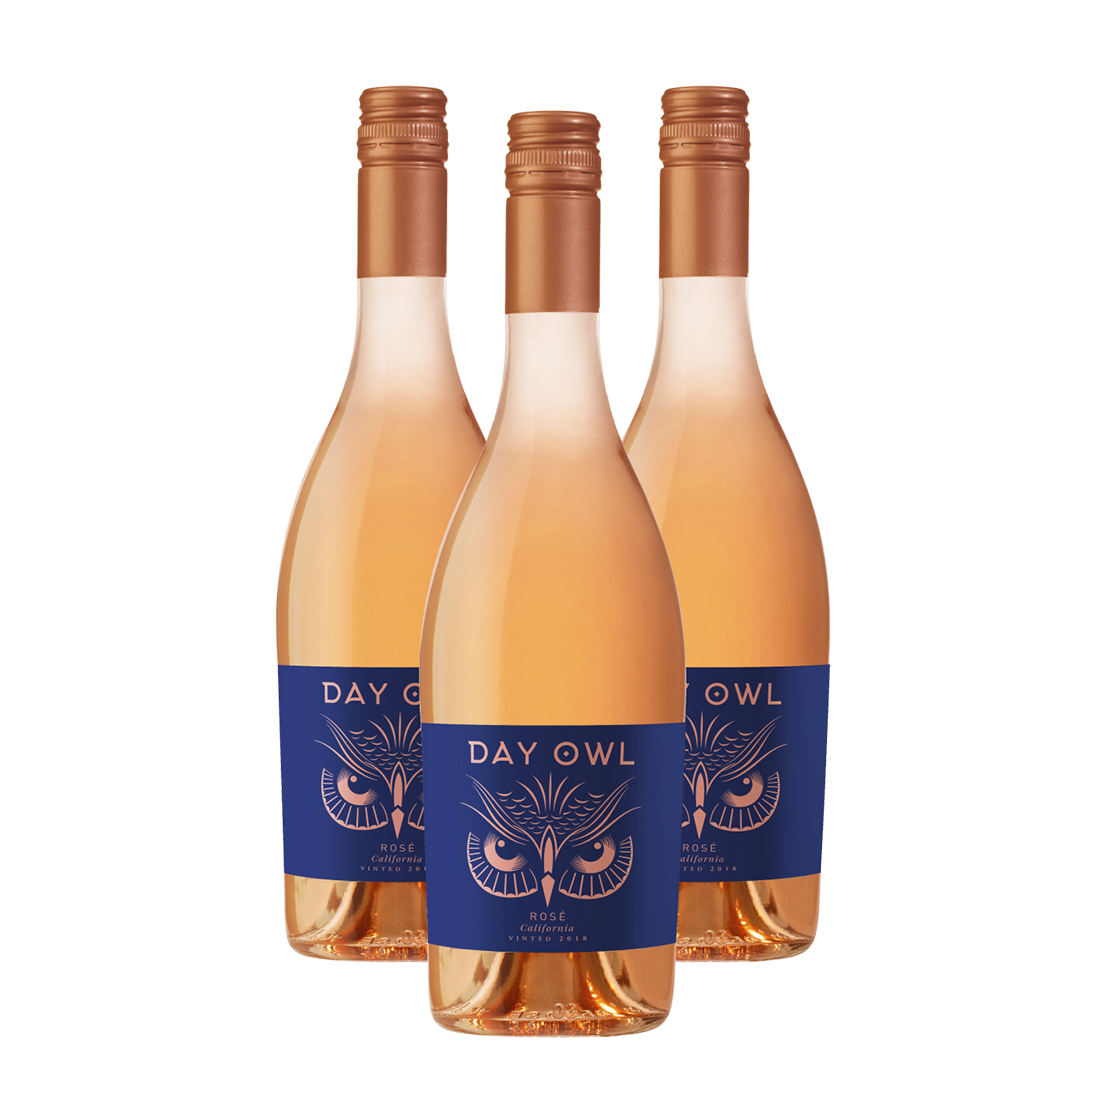 Day Owl Rosé 3 bottle pack